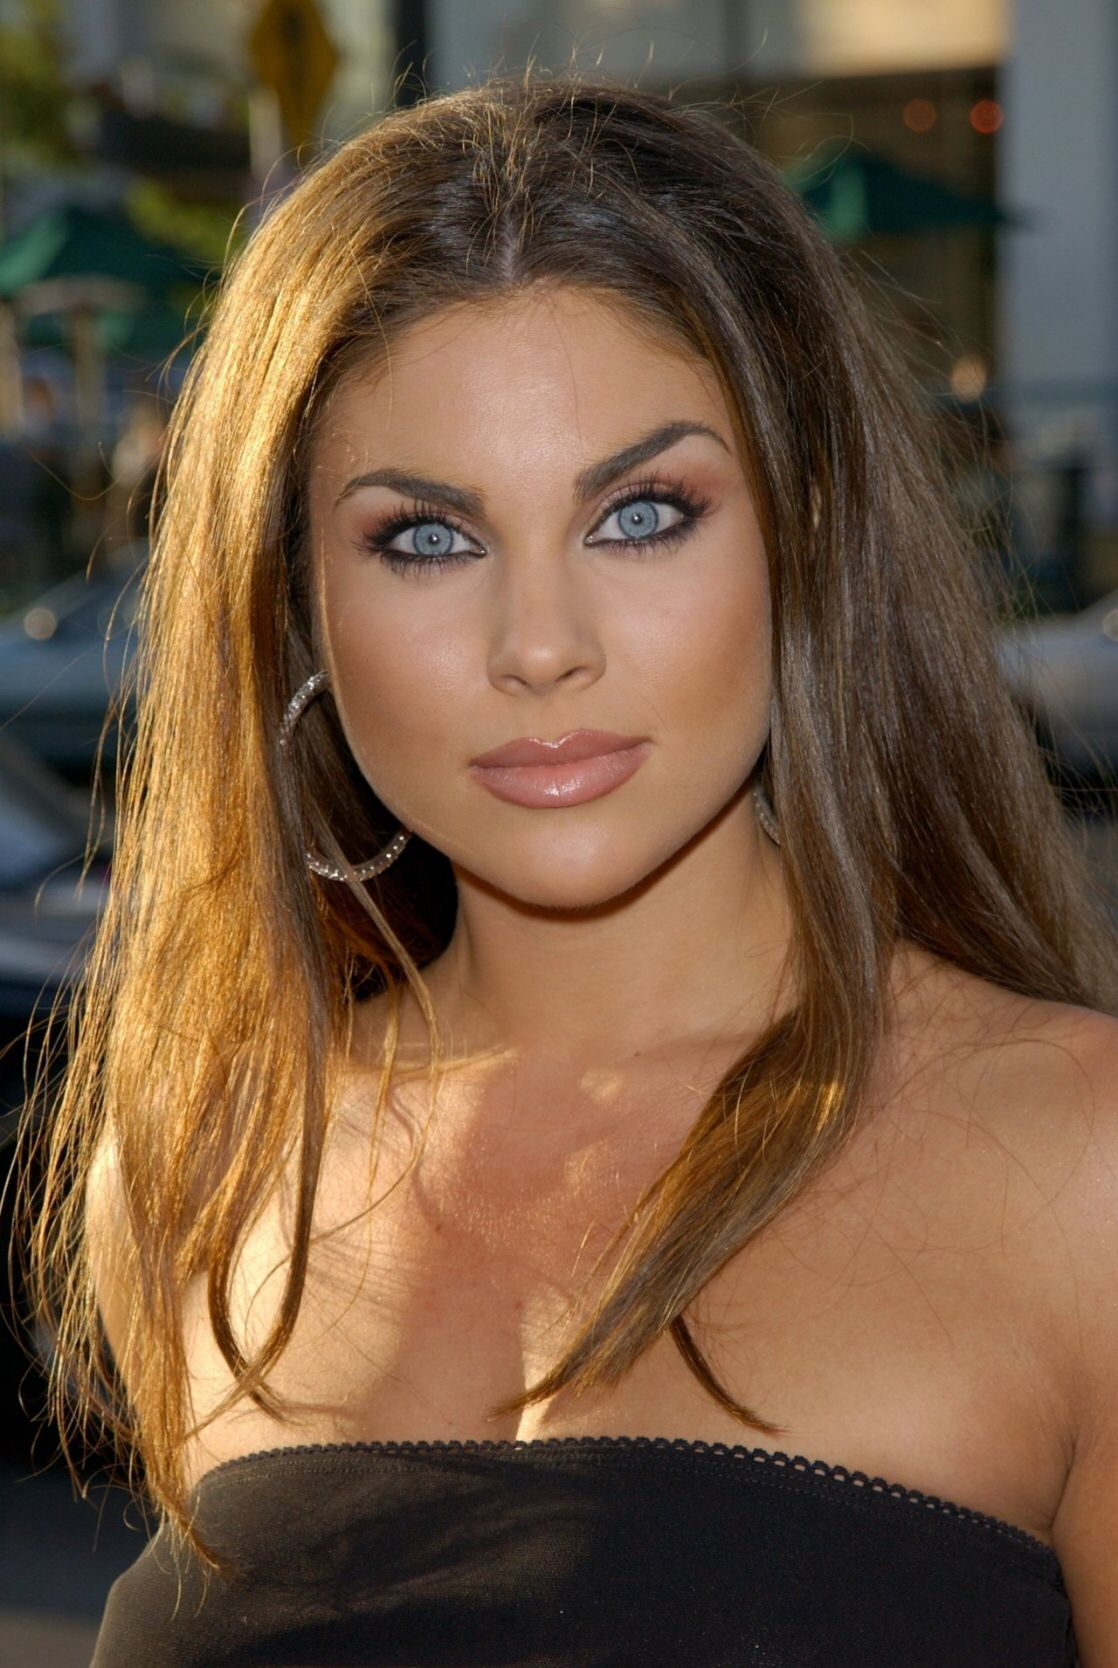 Excellent words Nadia bjorlin sex